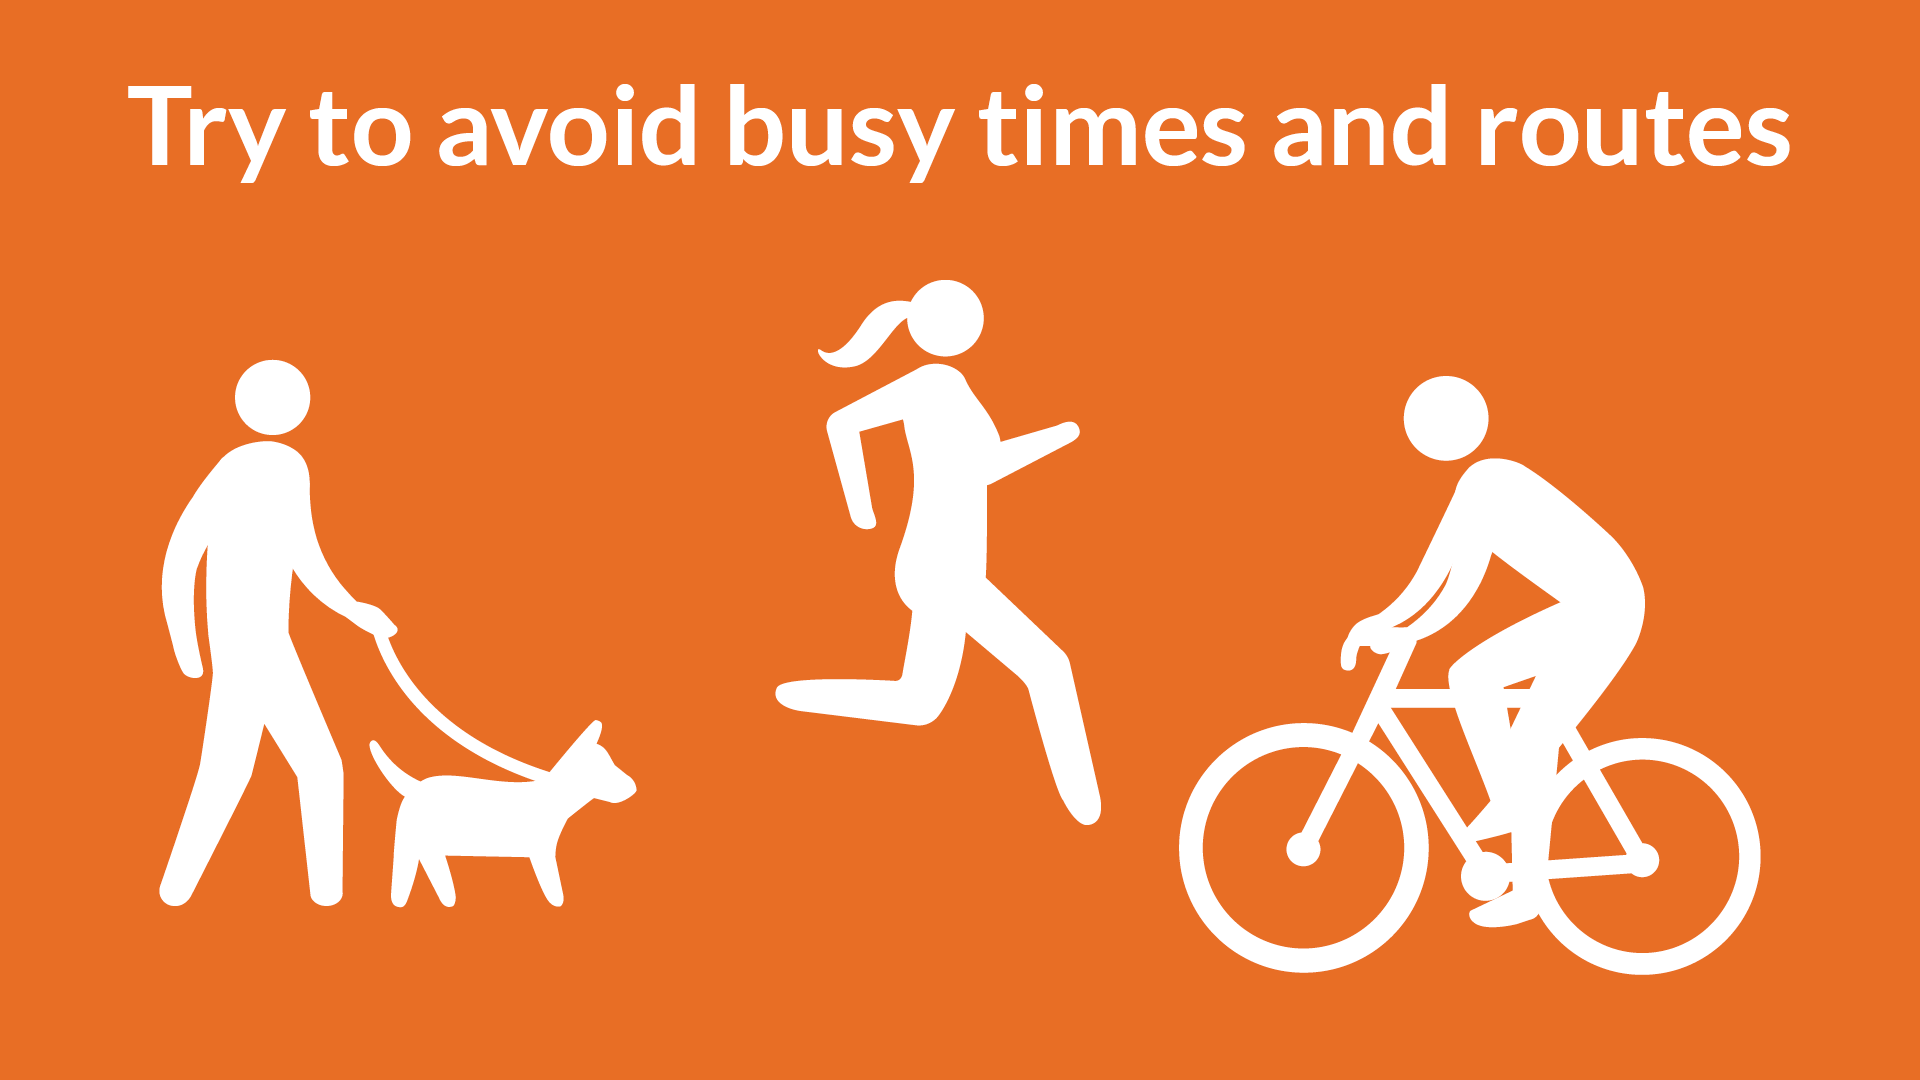 Avoid busy times graphic